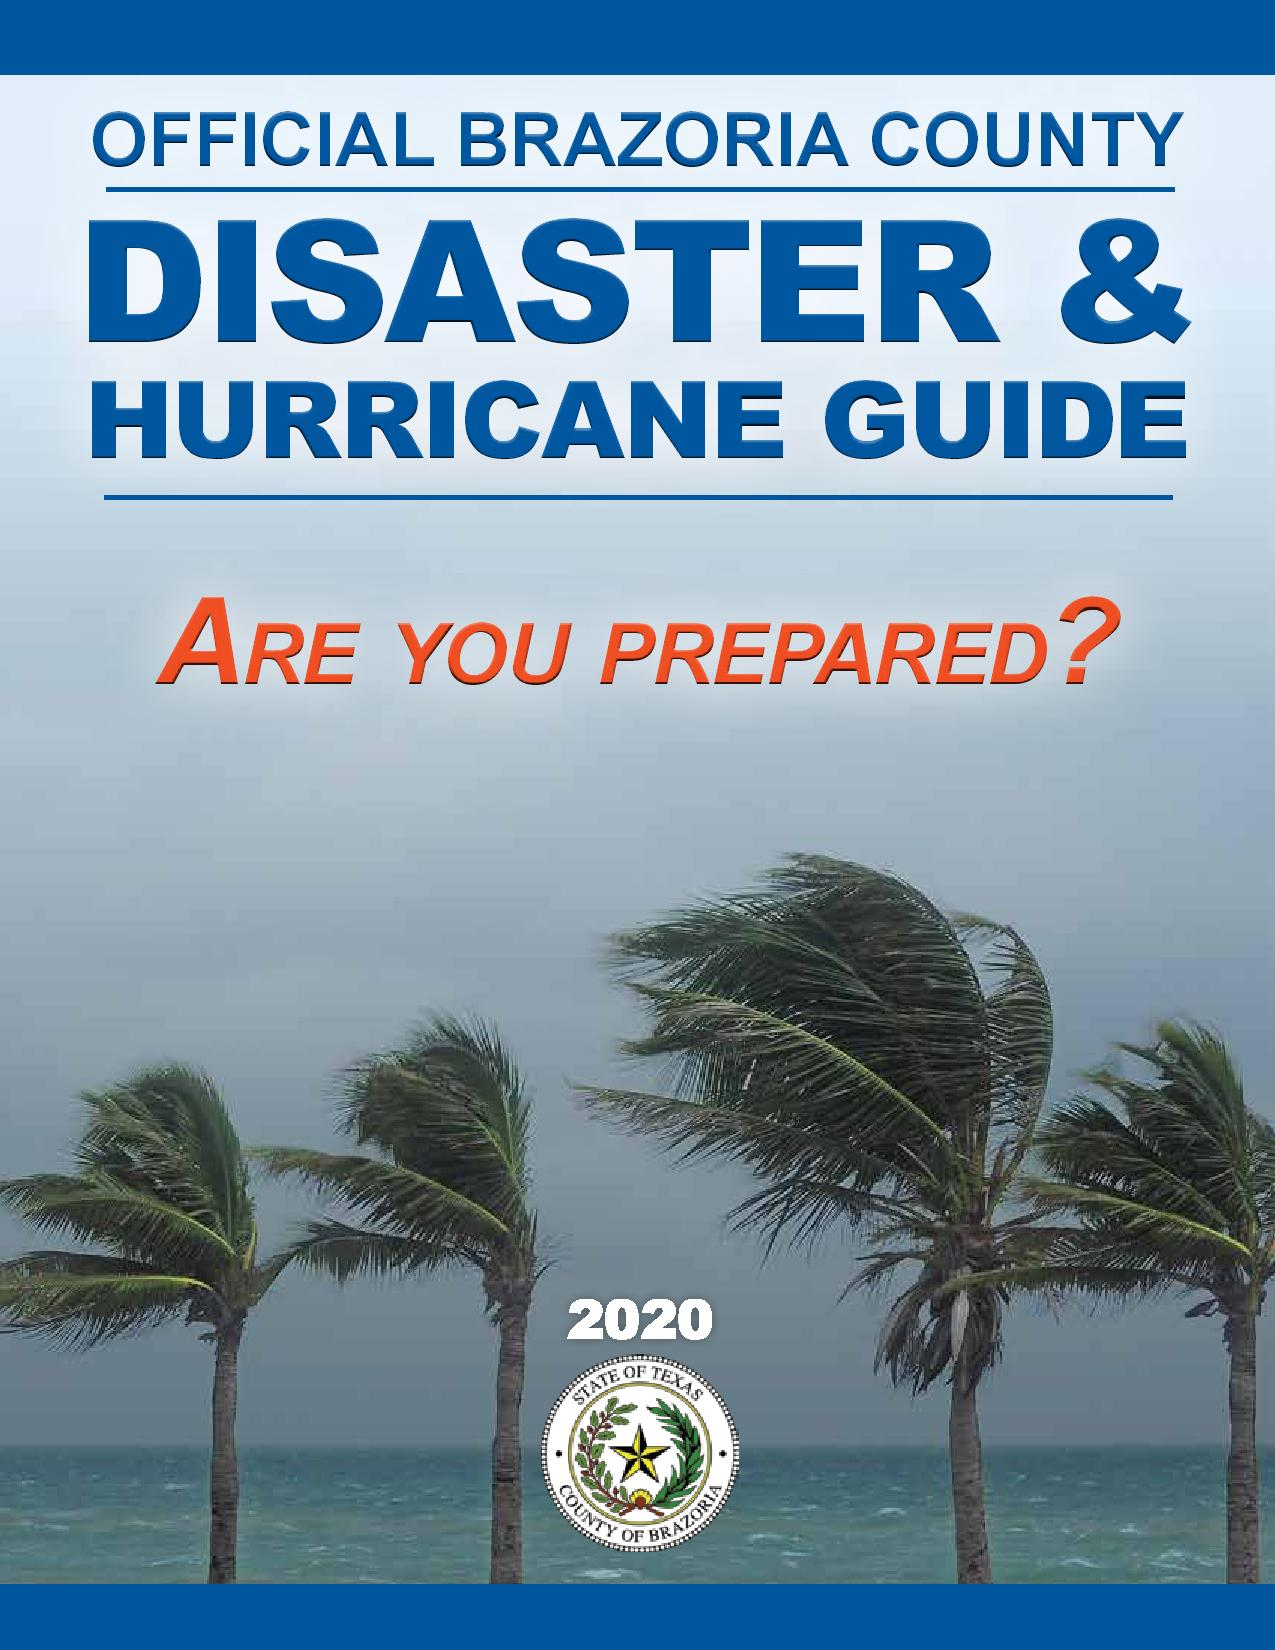 Hurricane Season is here! Are you prepared?